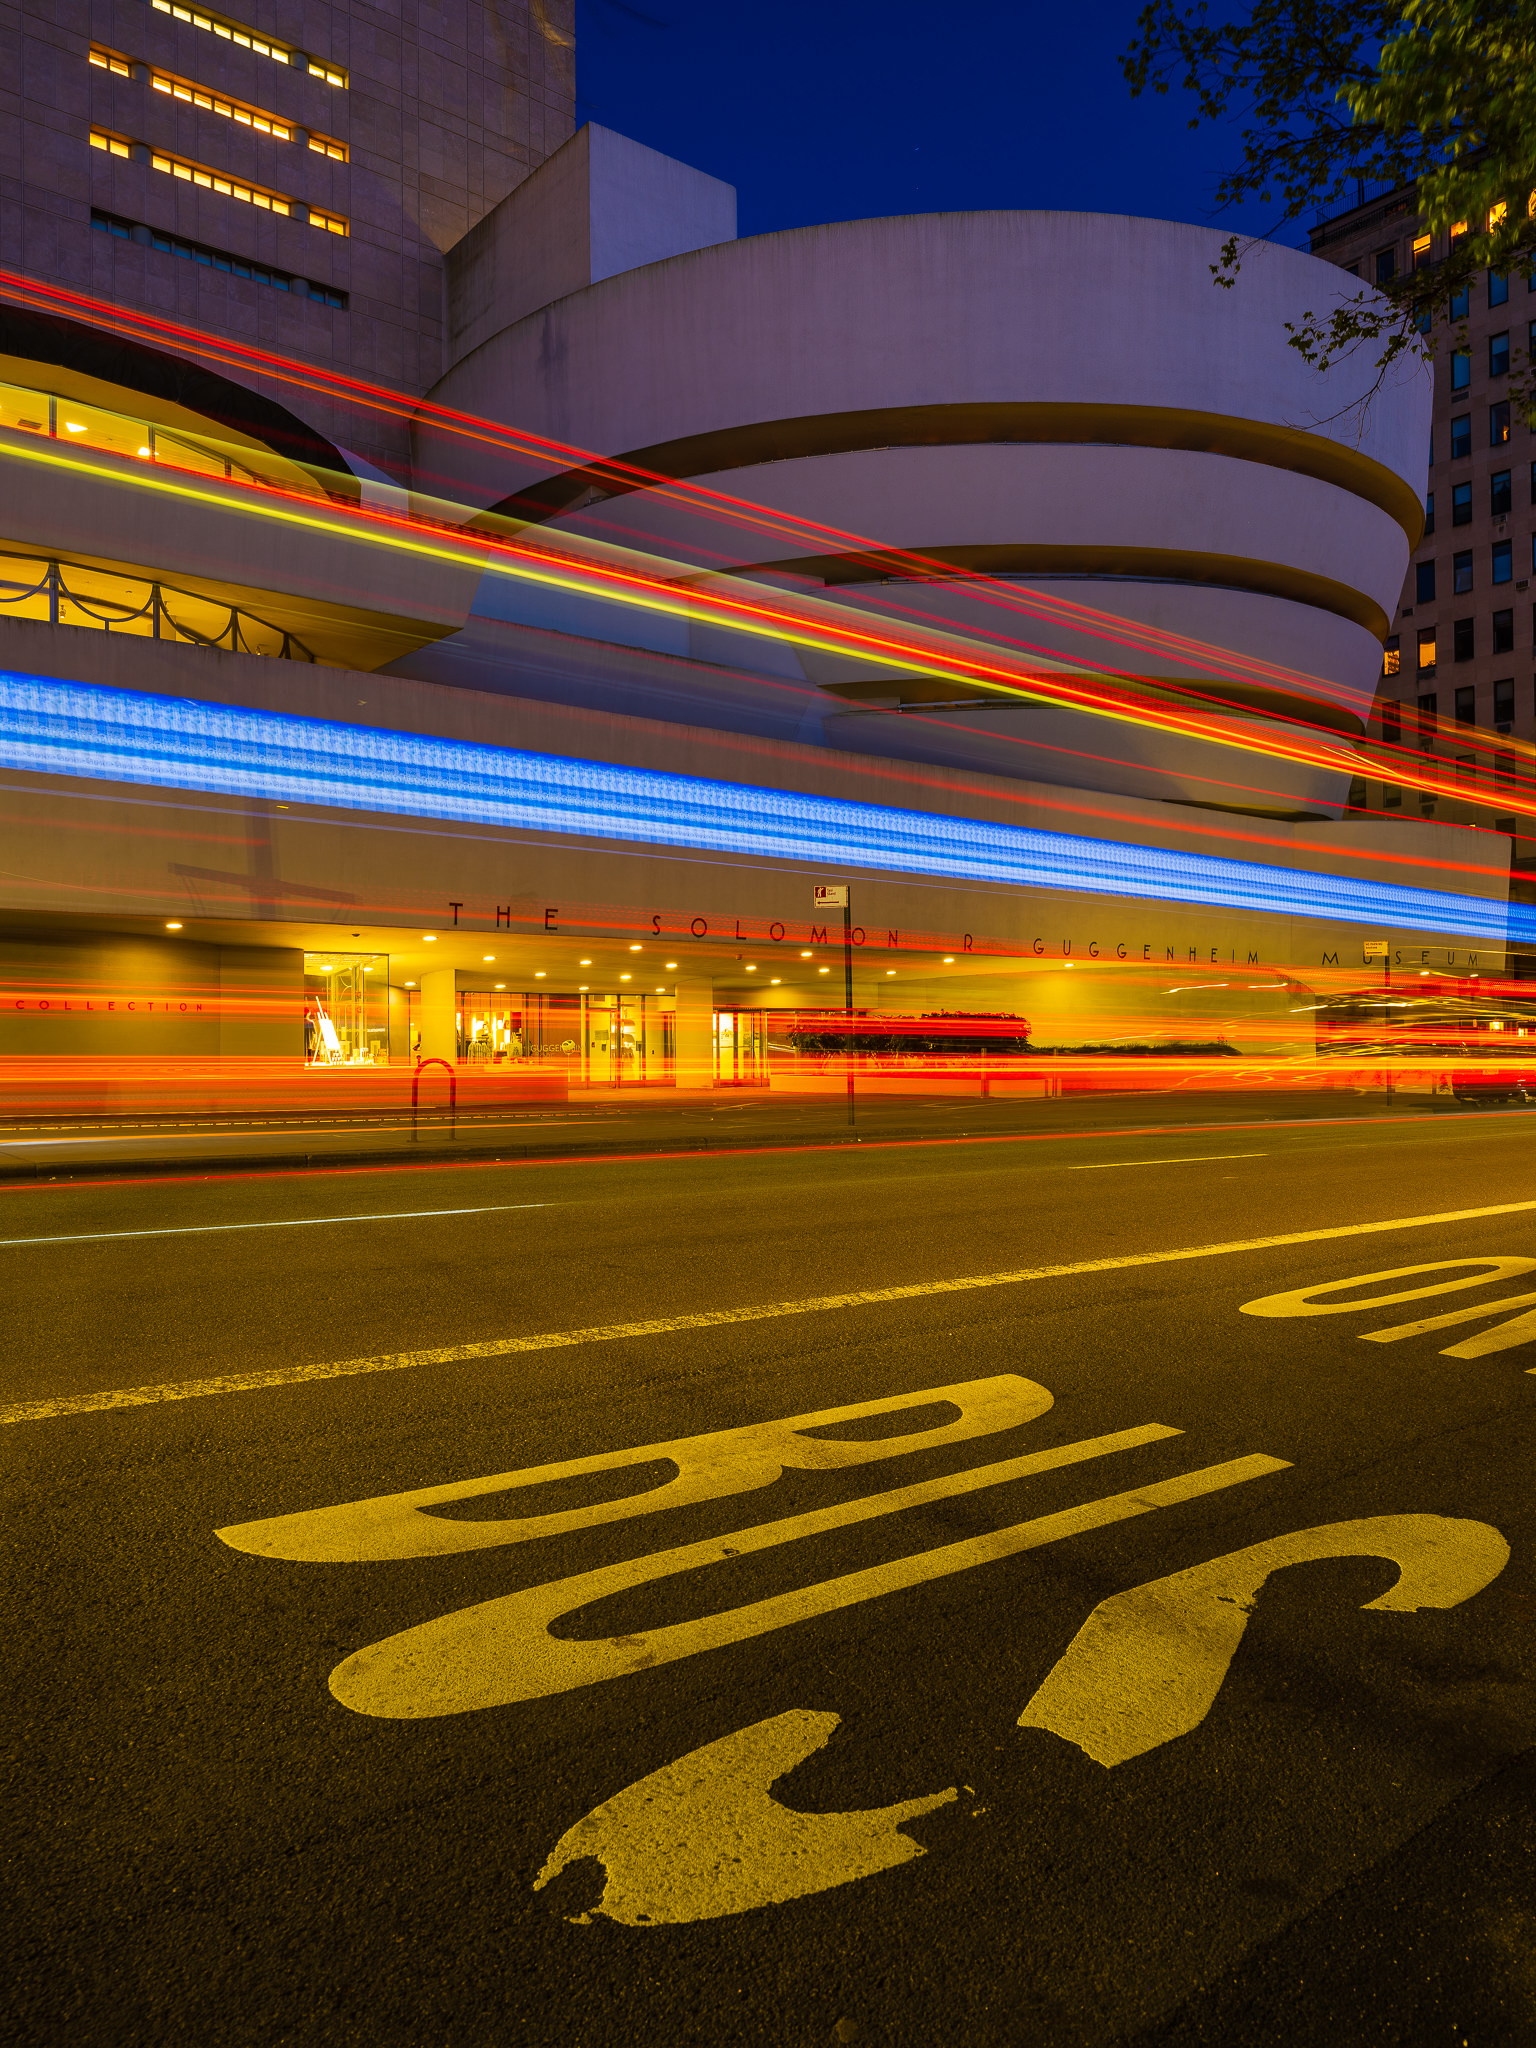 a photo of the guggenheim museum at night on fifth avenue in new york city